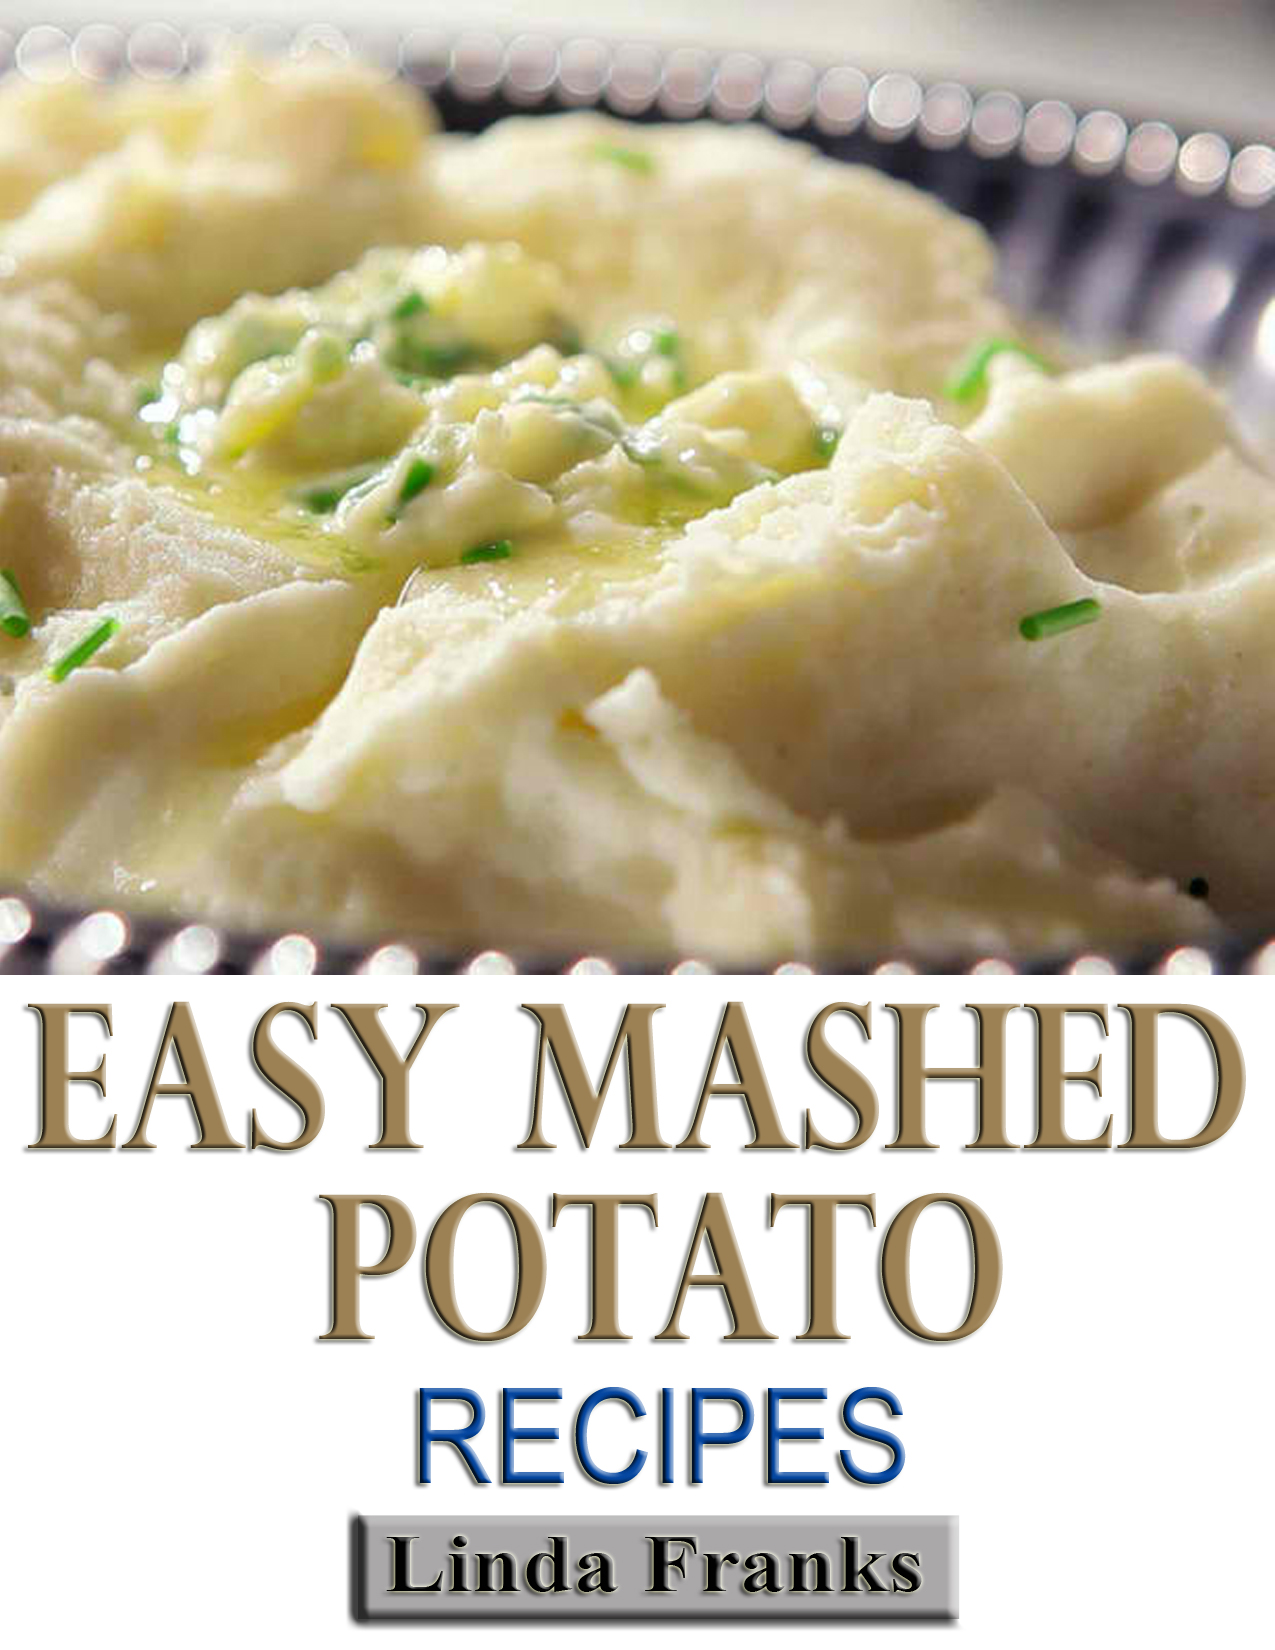 Linda Franks - Easy Mashed Potato Recipes